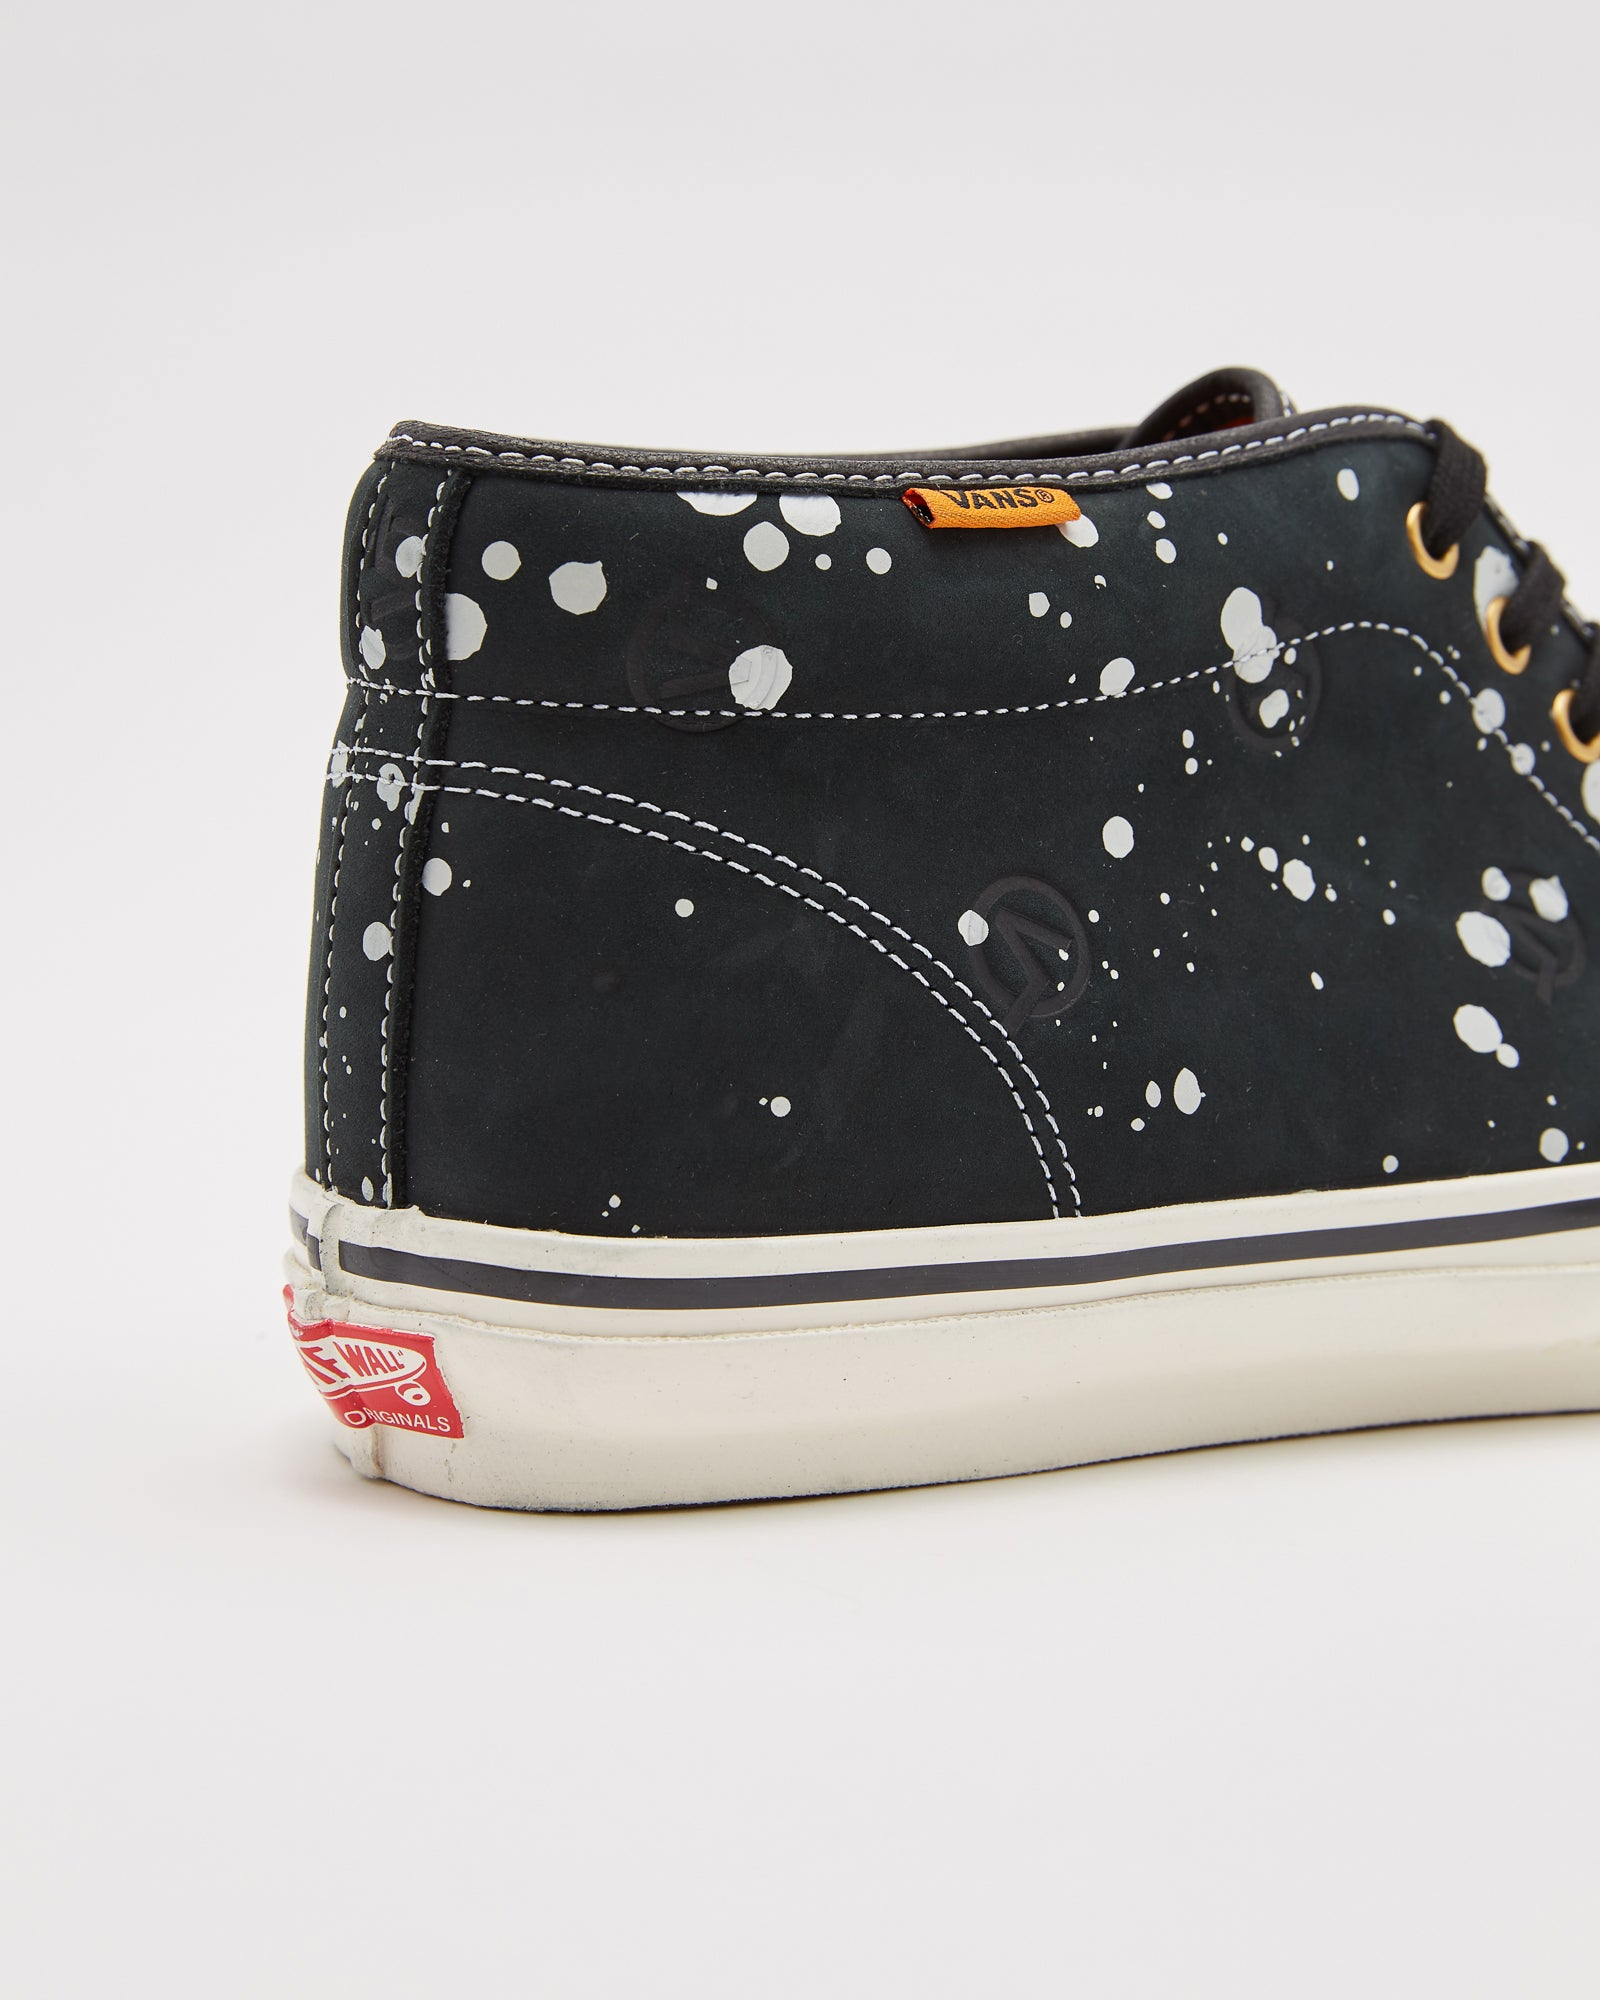 LQQK Studio UA OG Chukka Boot LX in Splatter Black